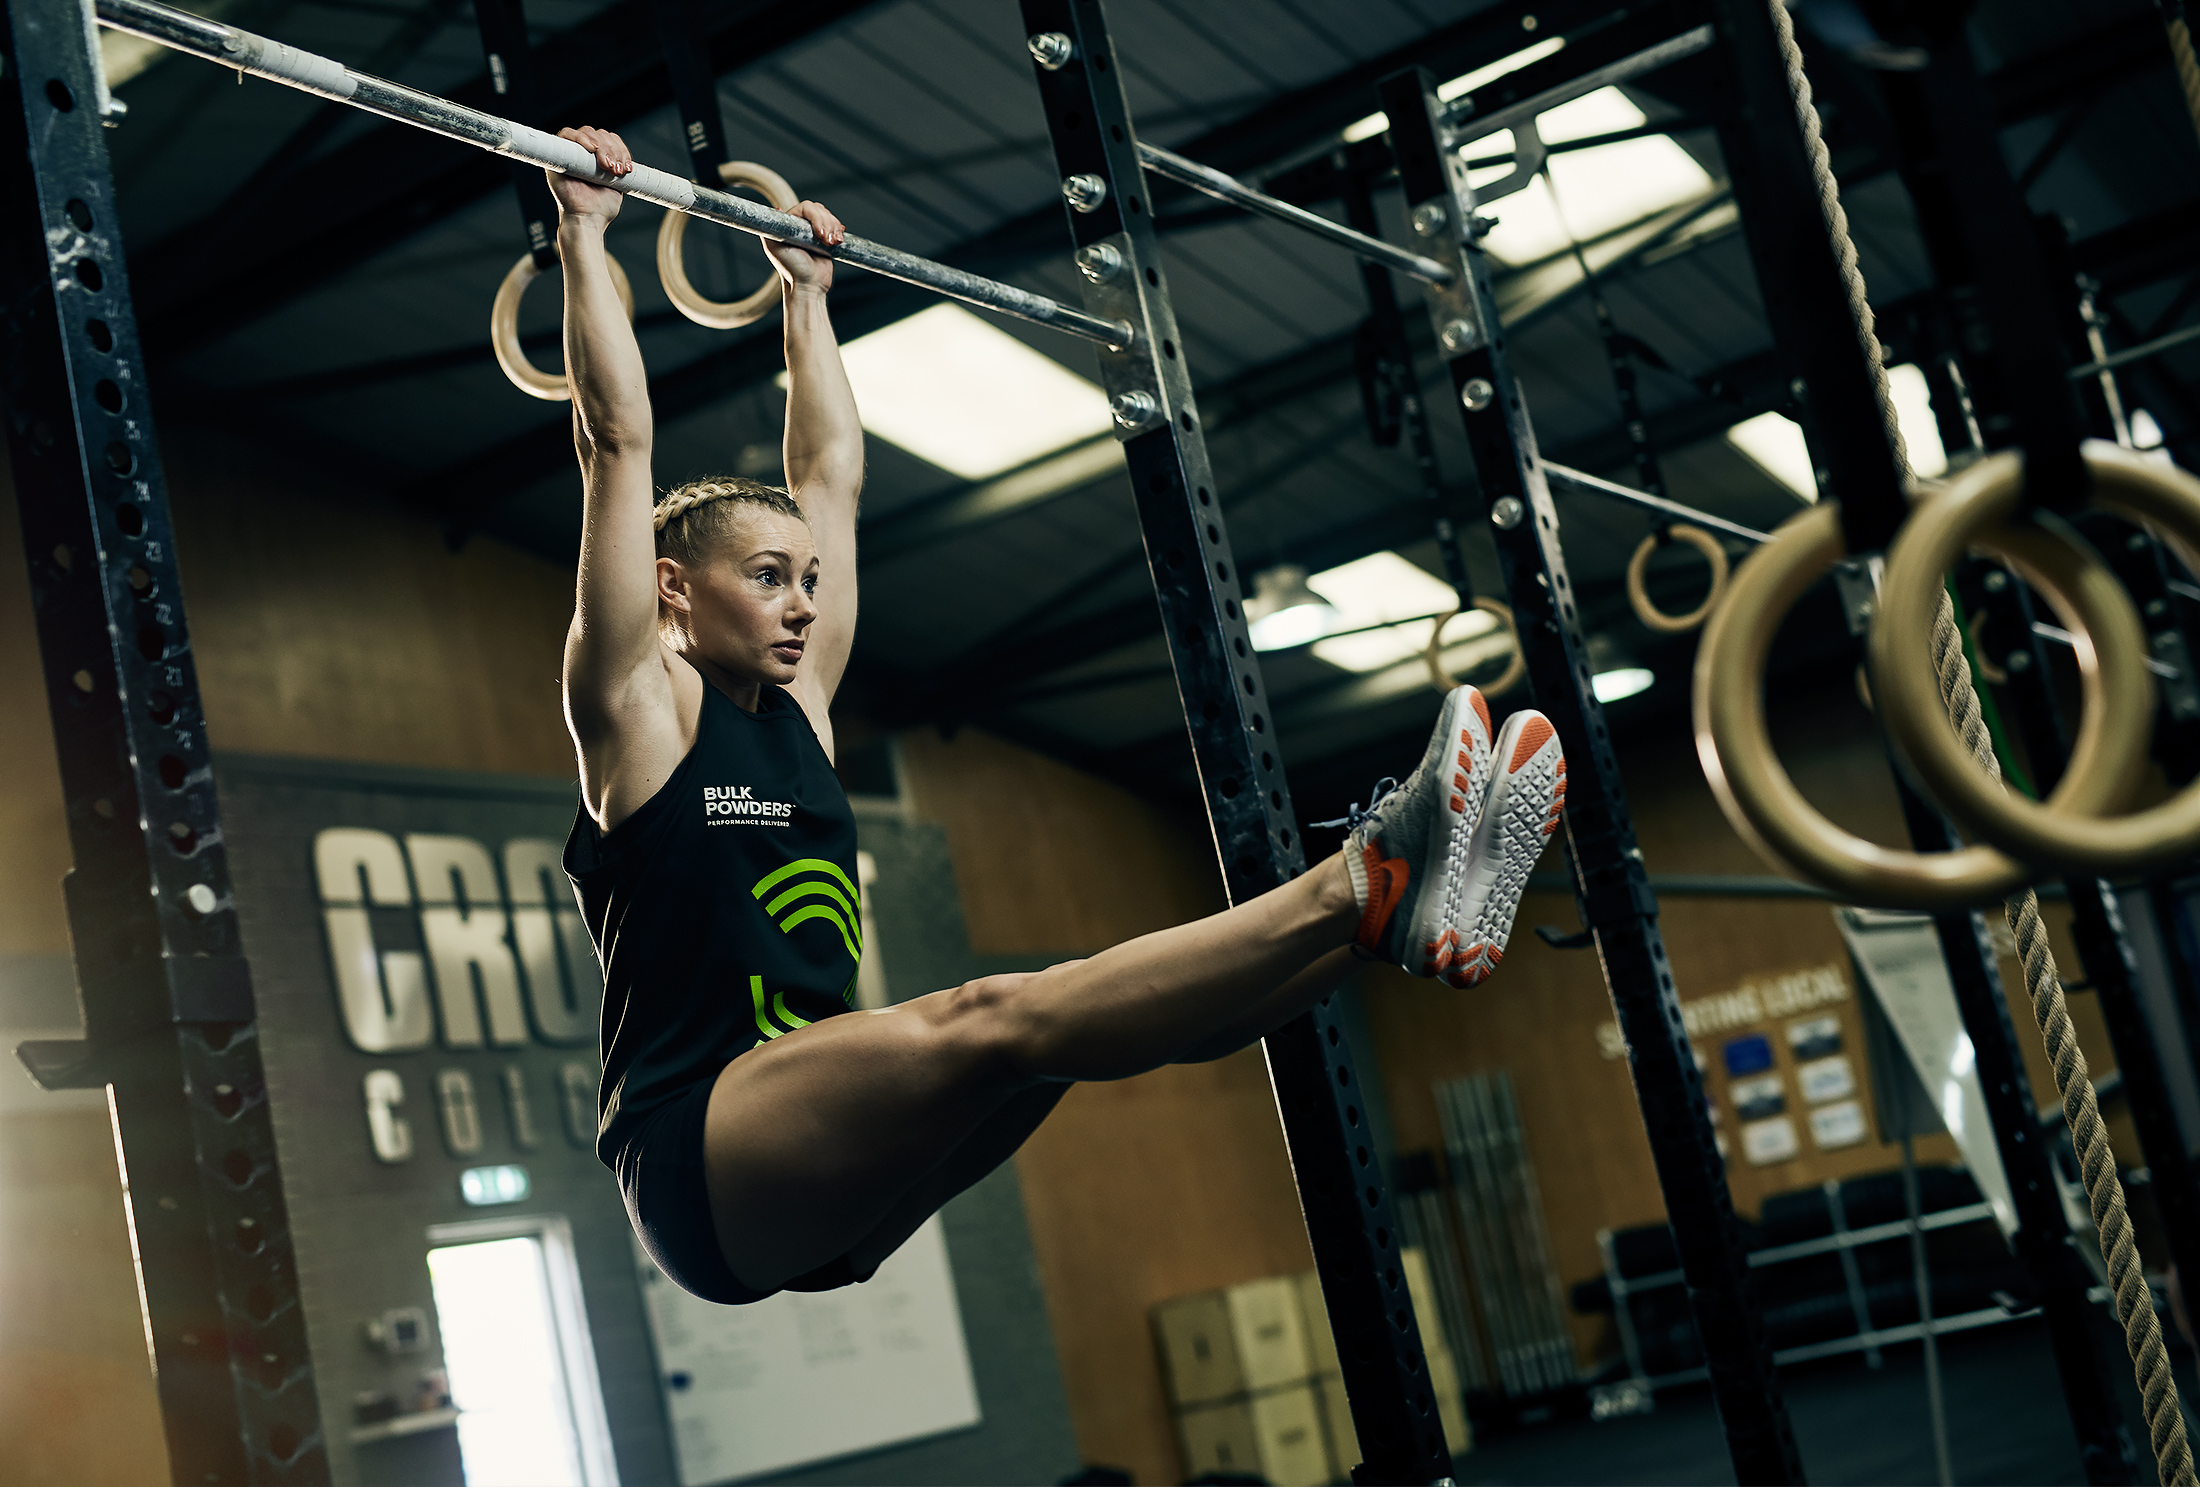 Emma Paveley at Crossfit